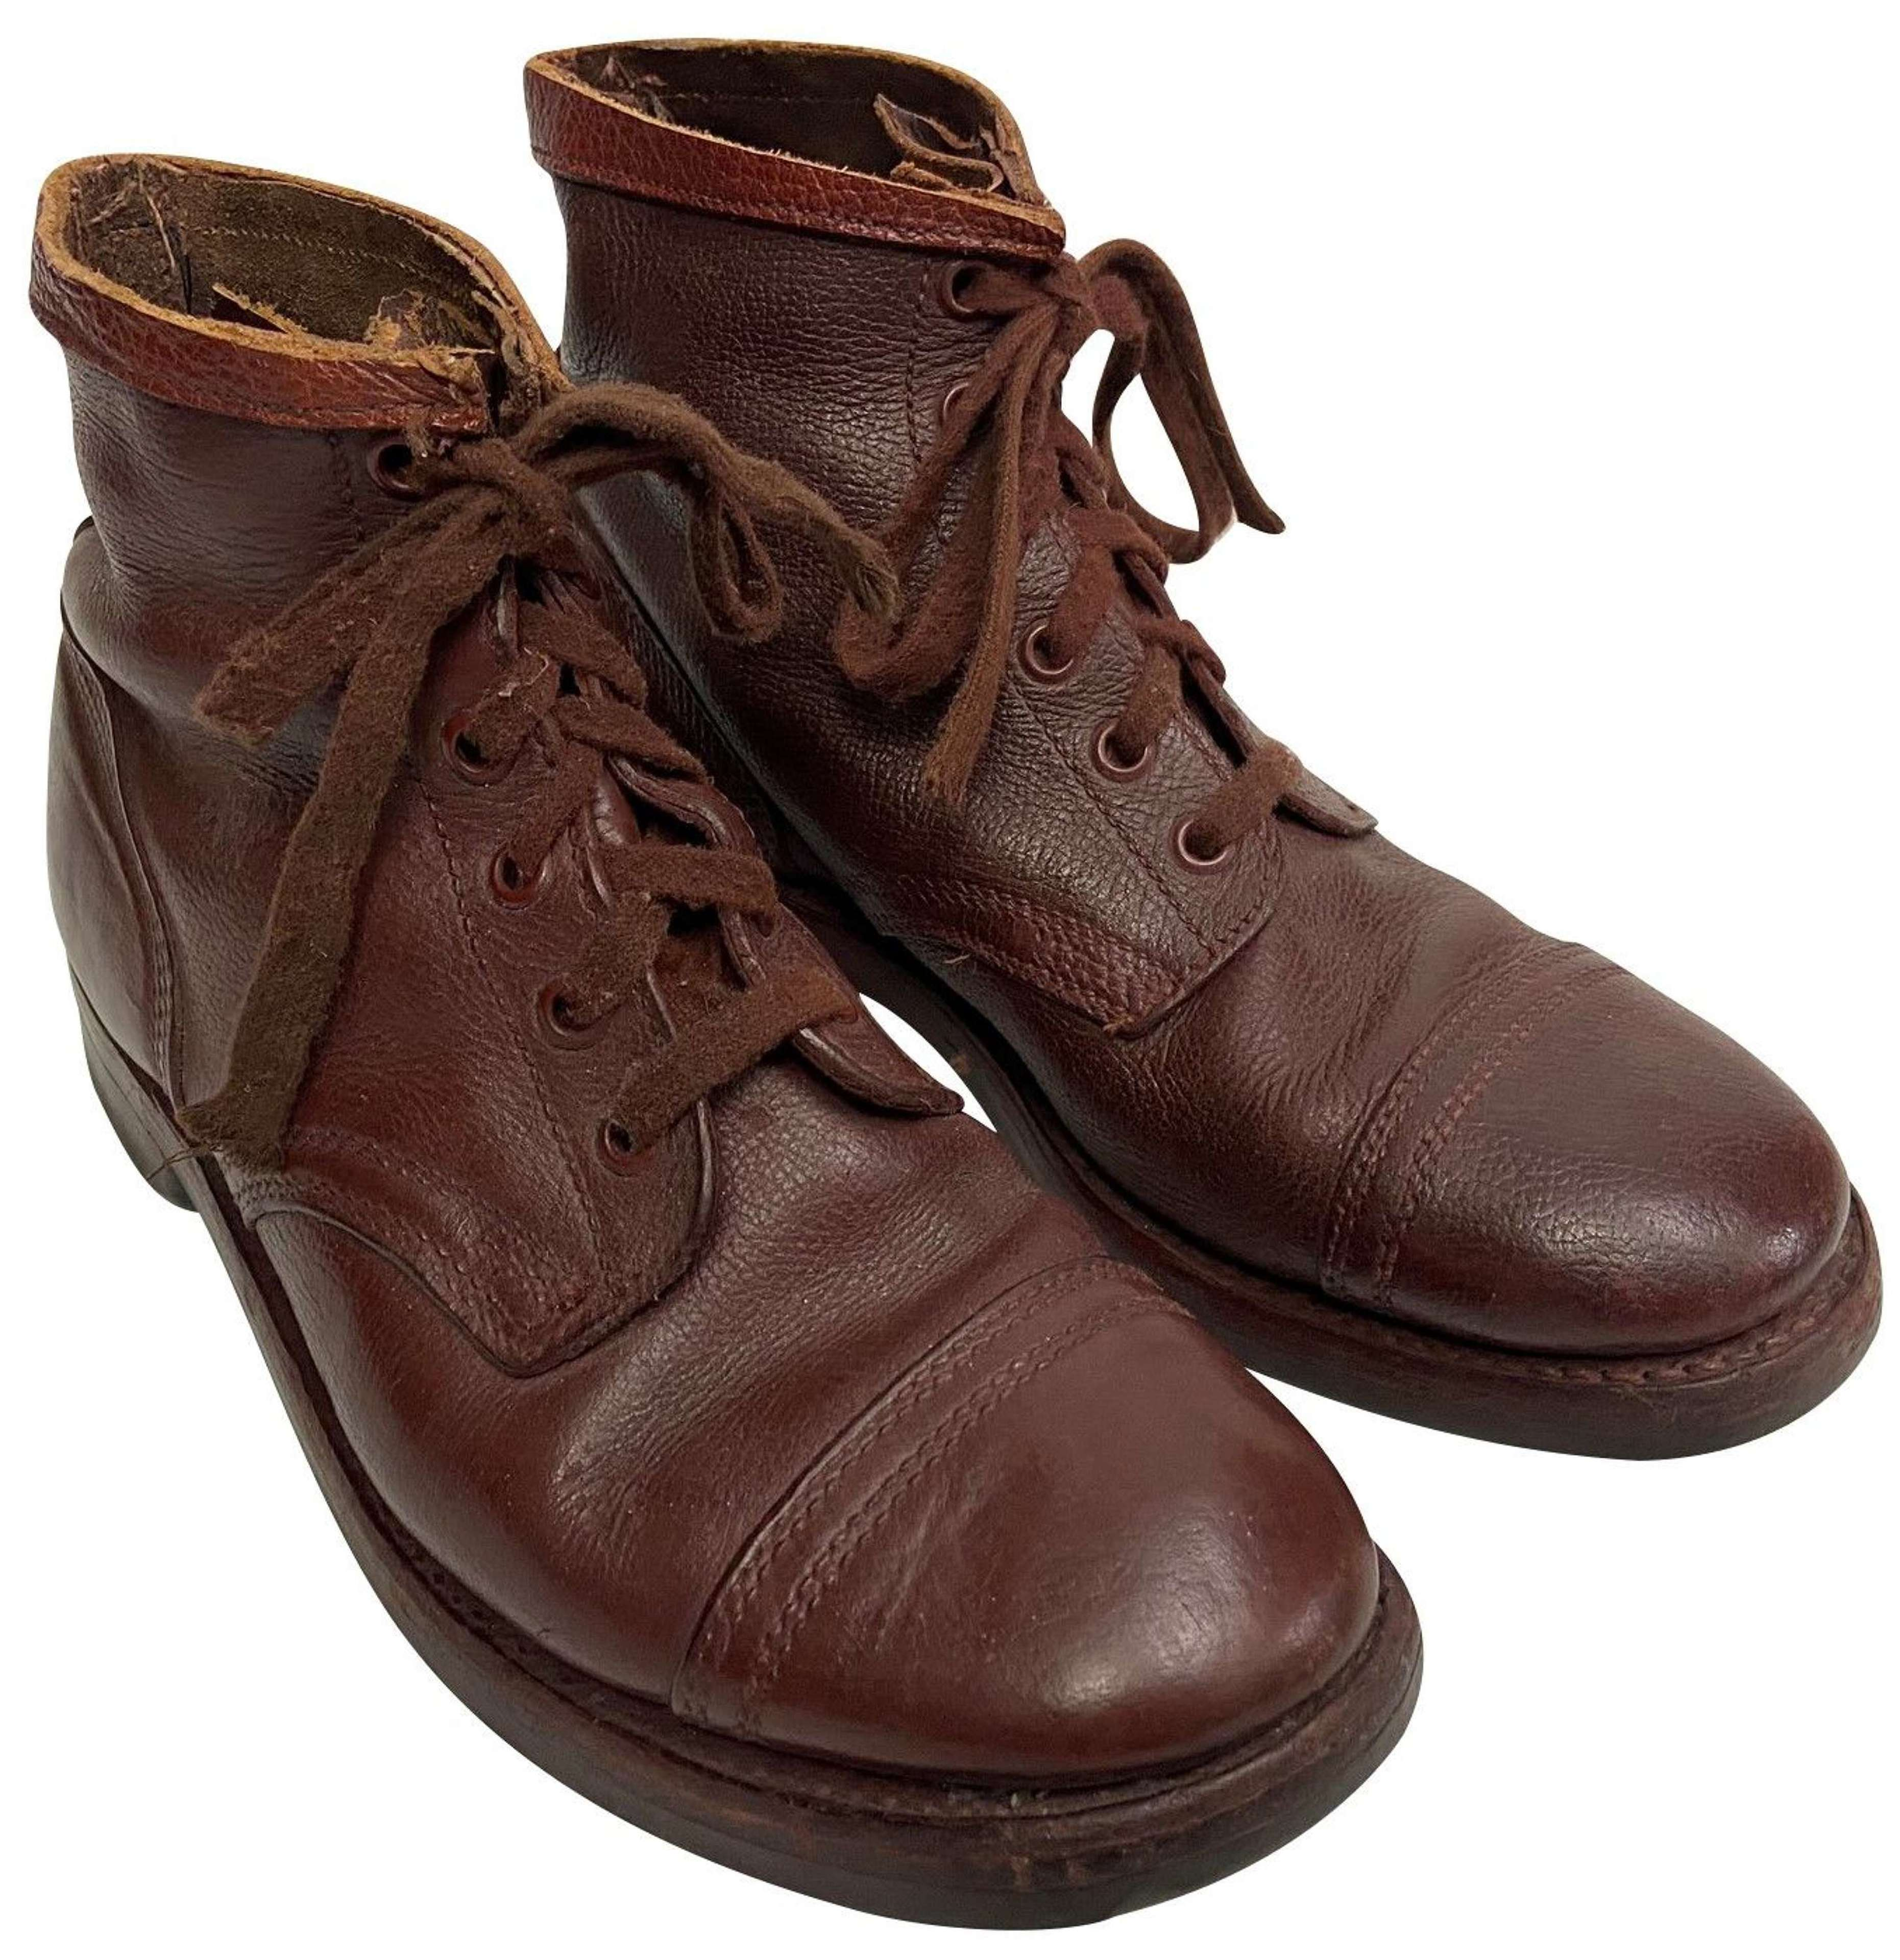 Original 1950s Dutch Military Brown Leather Ankle Boots - Size 10